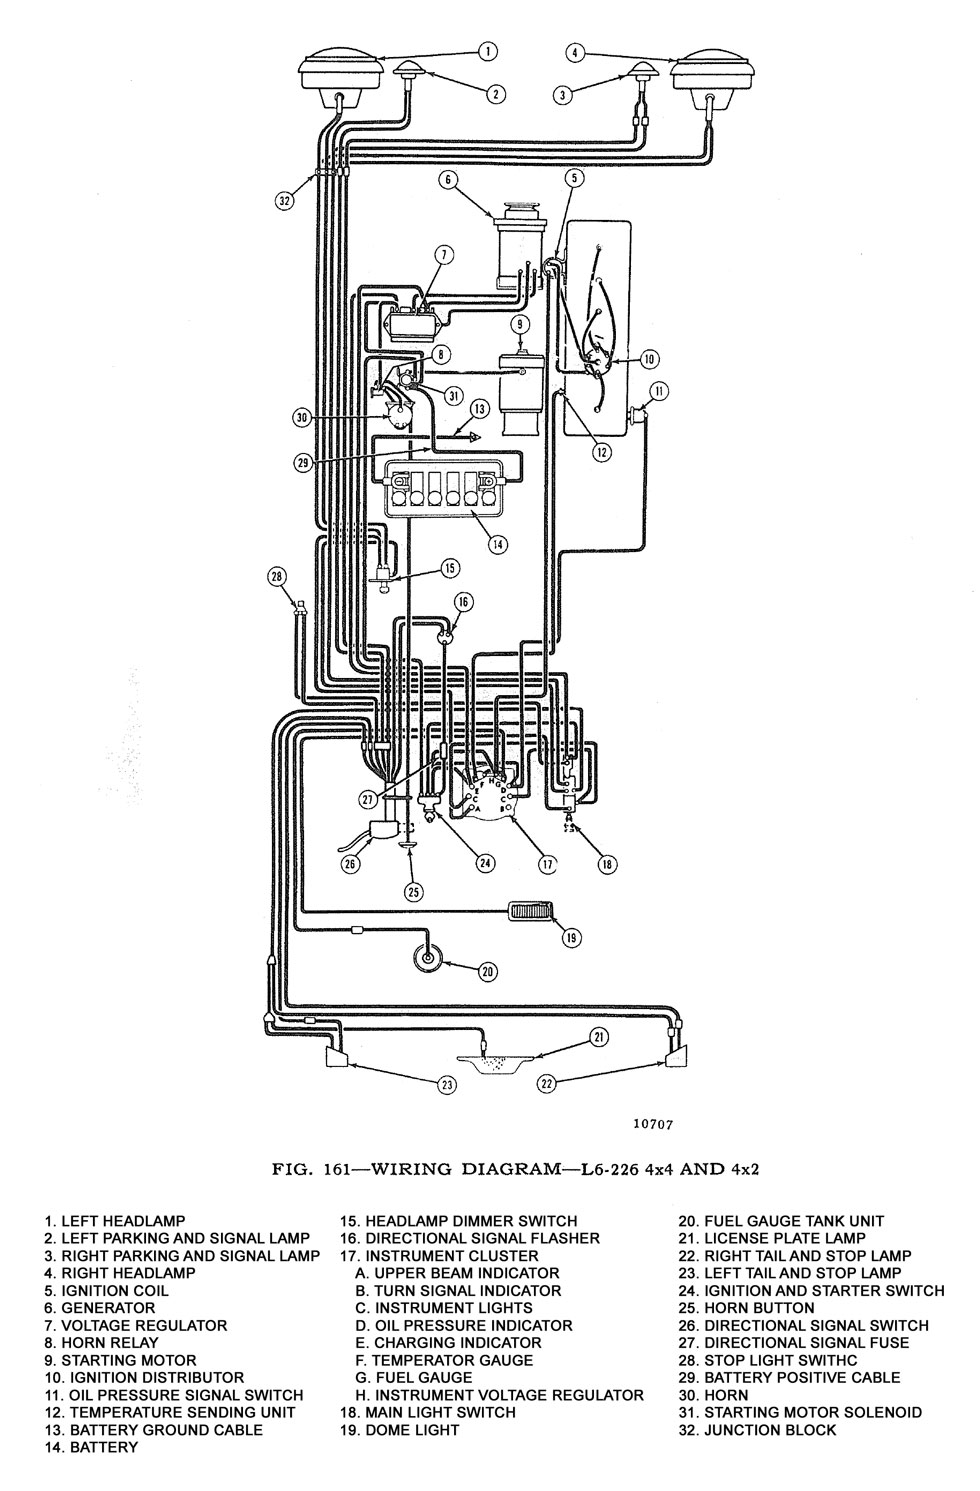 hight resolution of wiring diagram l6 226 4x4 and 4x2kaiser willys wiring diagrams 1